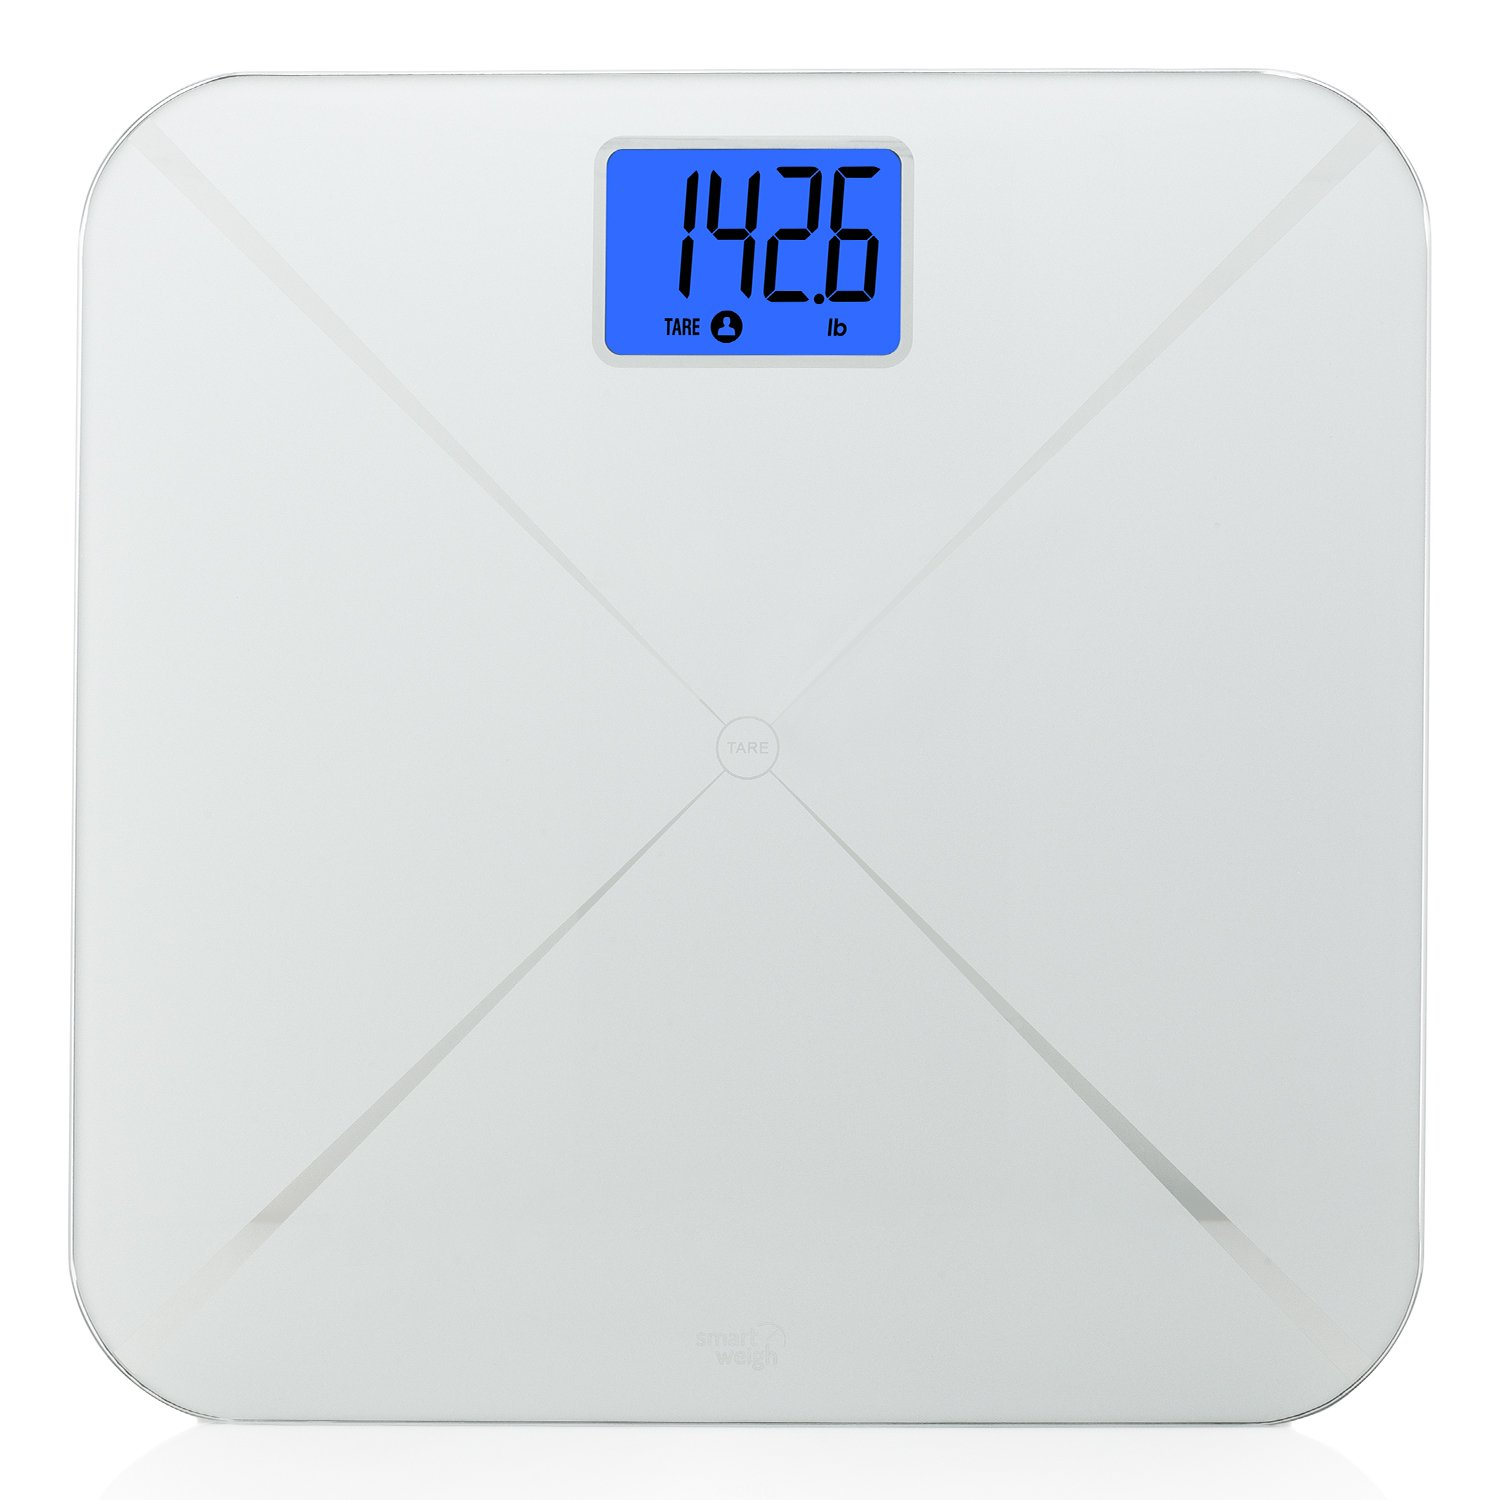 Smart Weigh Smart Digital Body Weight Bathroom Scale with Baby or Pet Tare Weighing Technology, Large LCD Display and Tempered Glass Platform, 440lbs/200kg Capacity (Silver) 4332443291